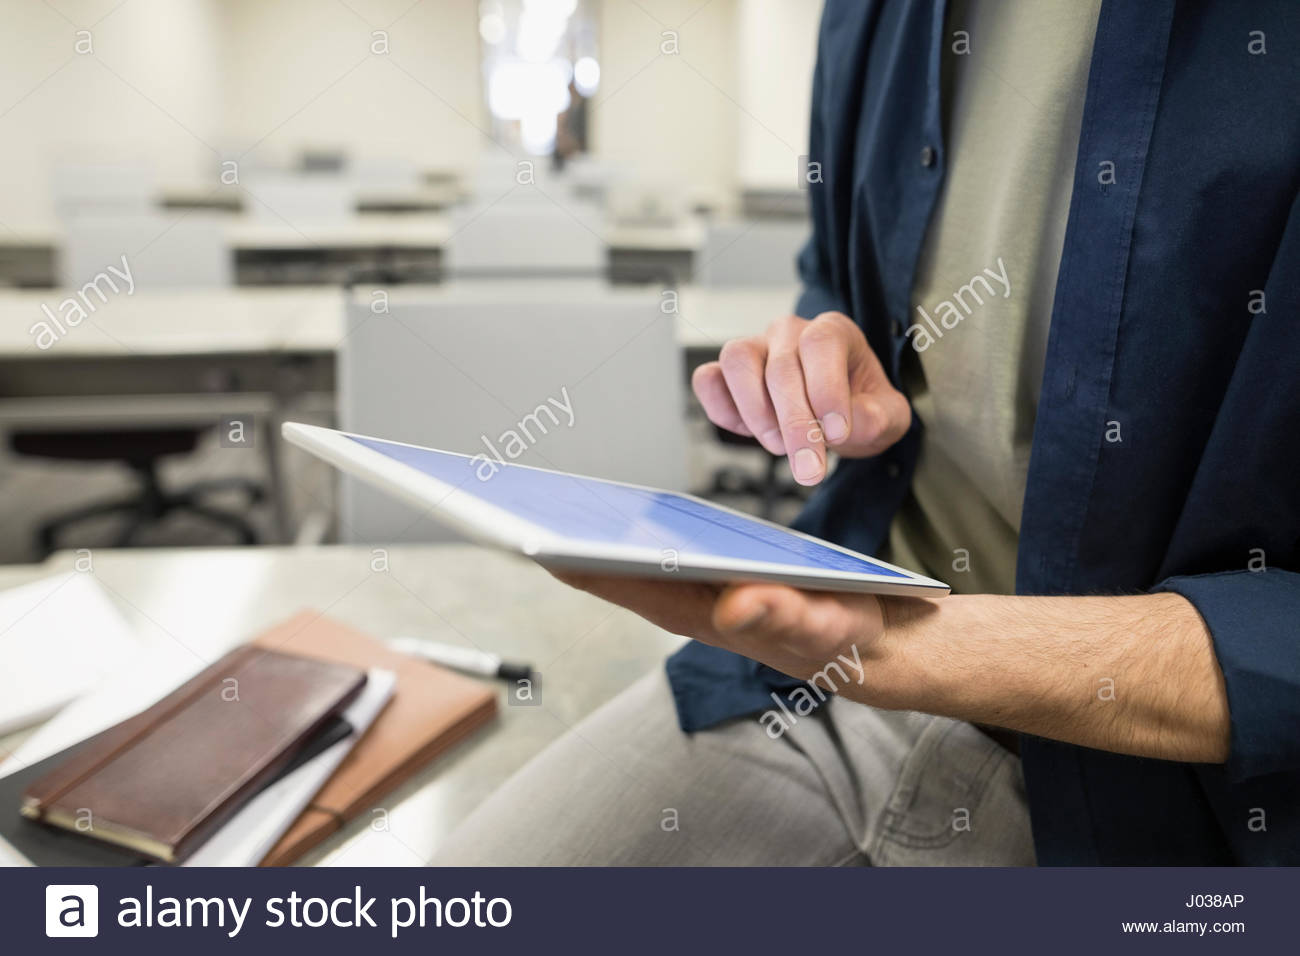 Close up businessman using digital tablet in classroom Photo Stock